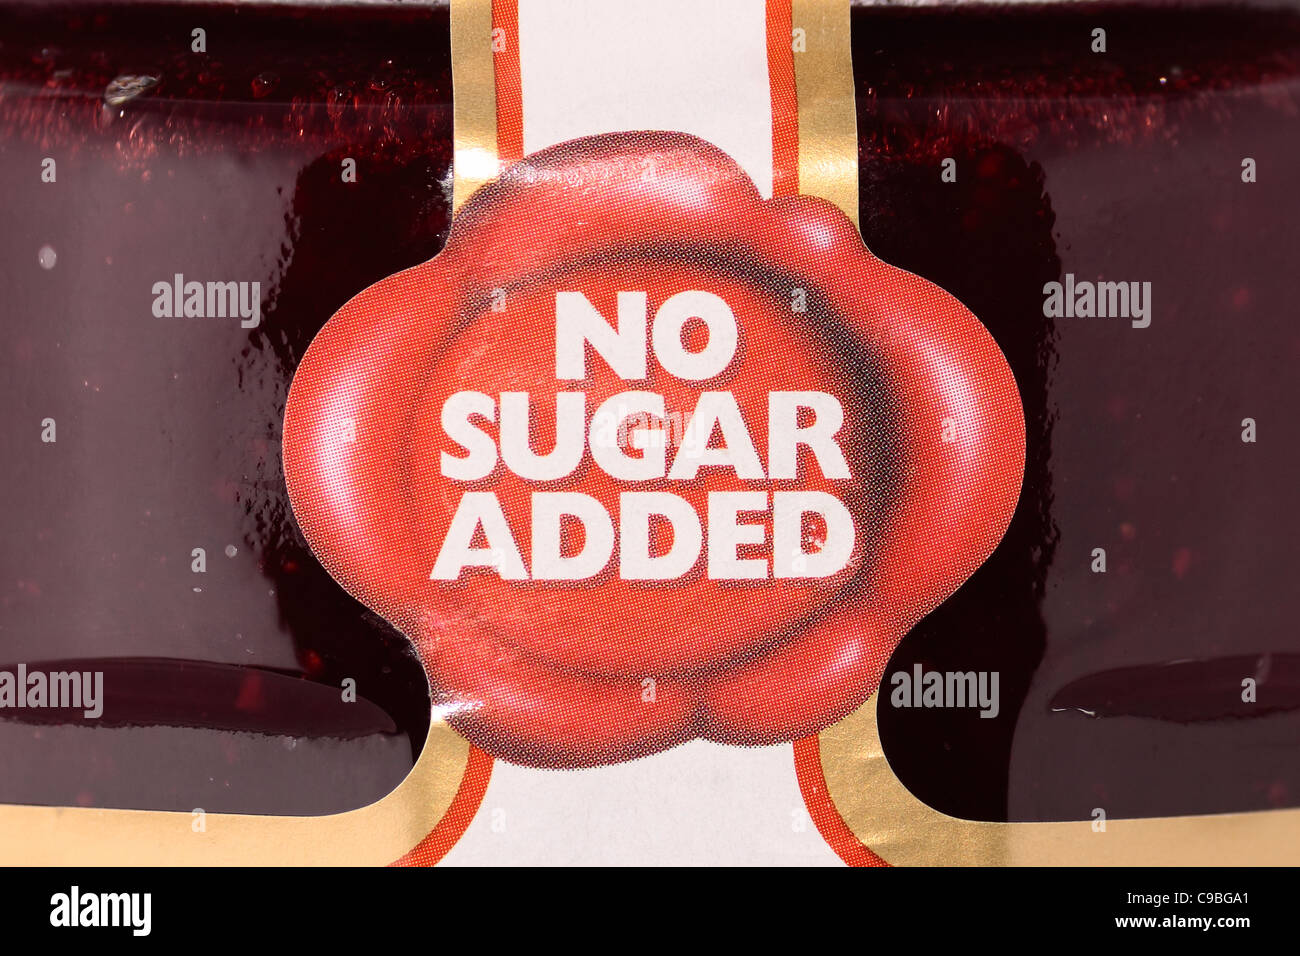 Diabetic strawberry jam with 'No Sugar Added' label - Stock Image